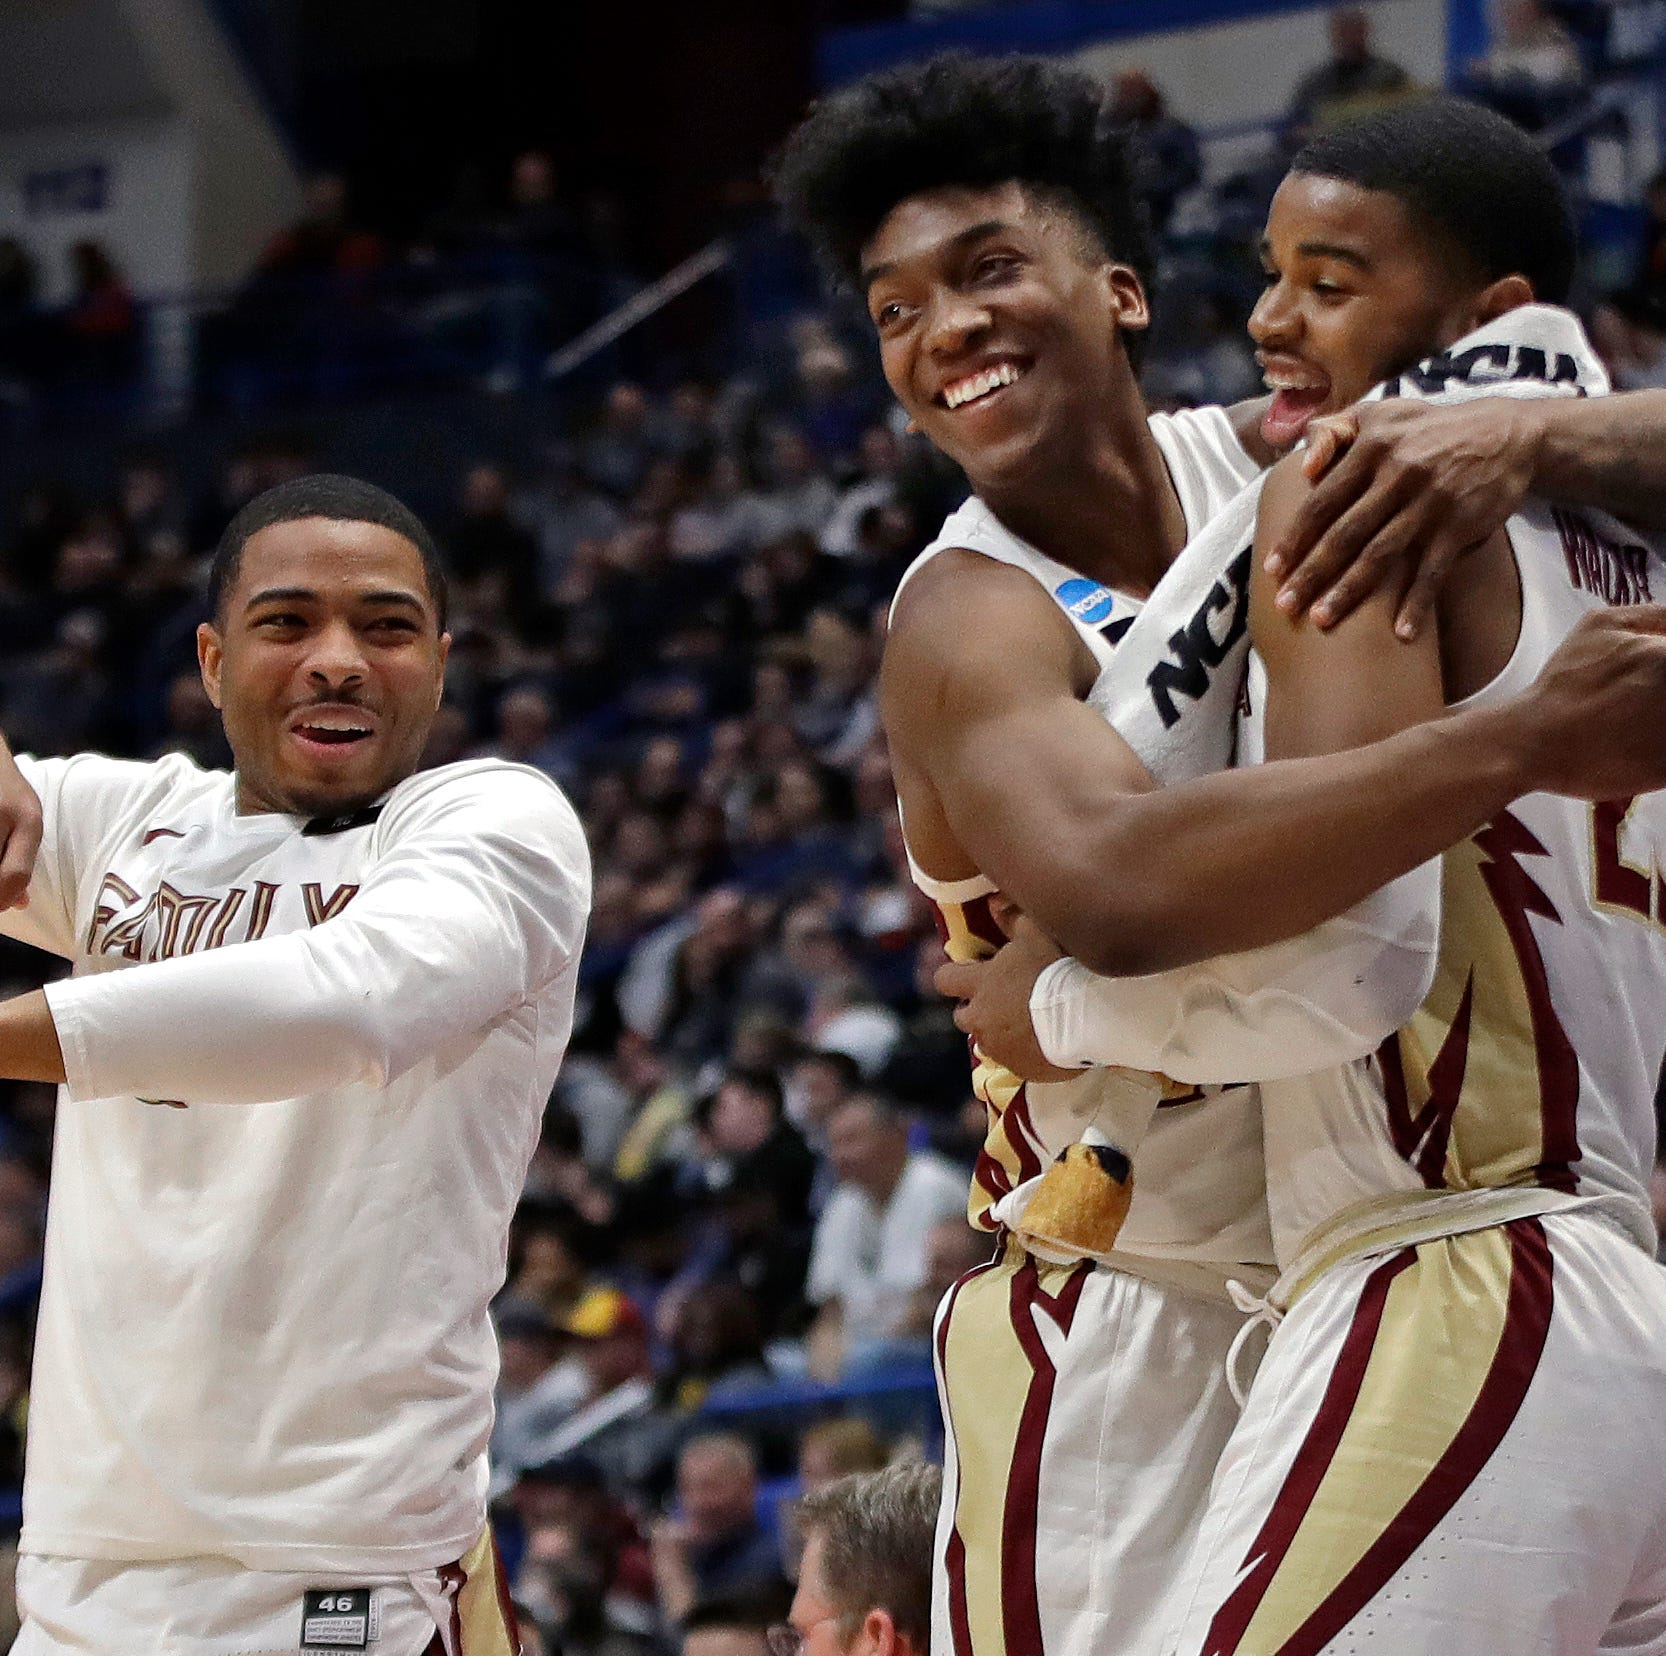 Ja-droppers: Florida State crushes Murray State to reach Sweet 16